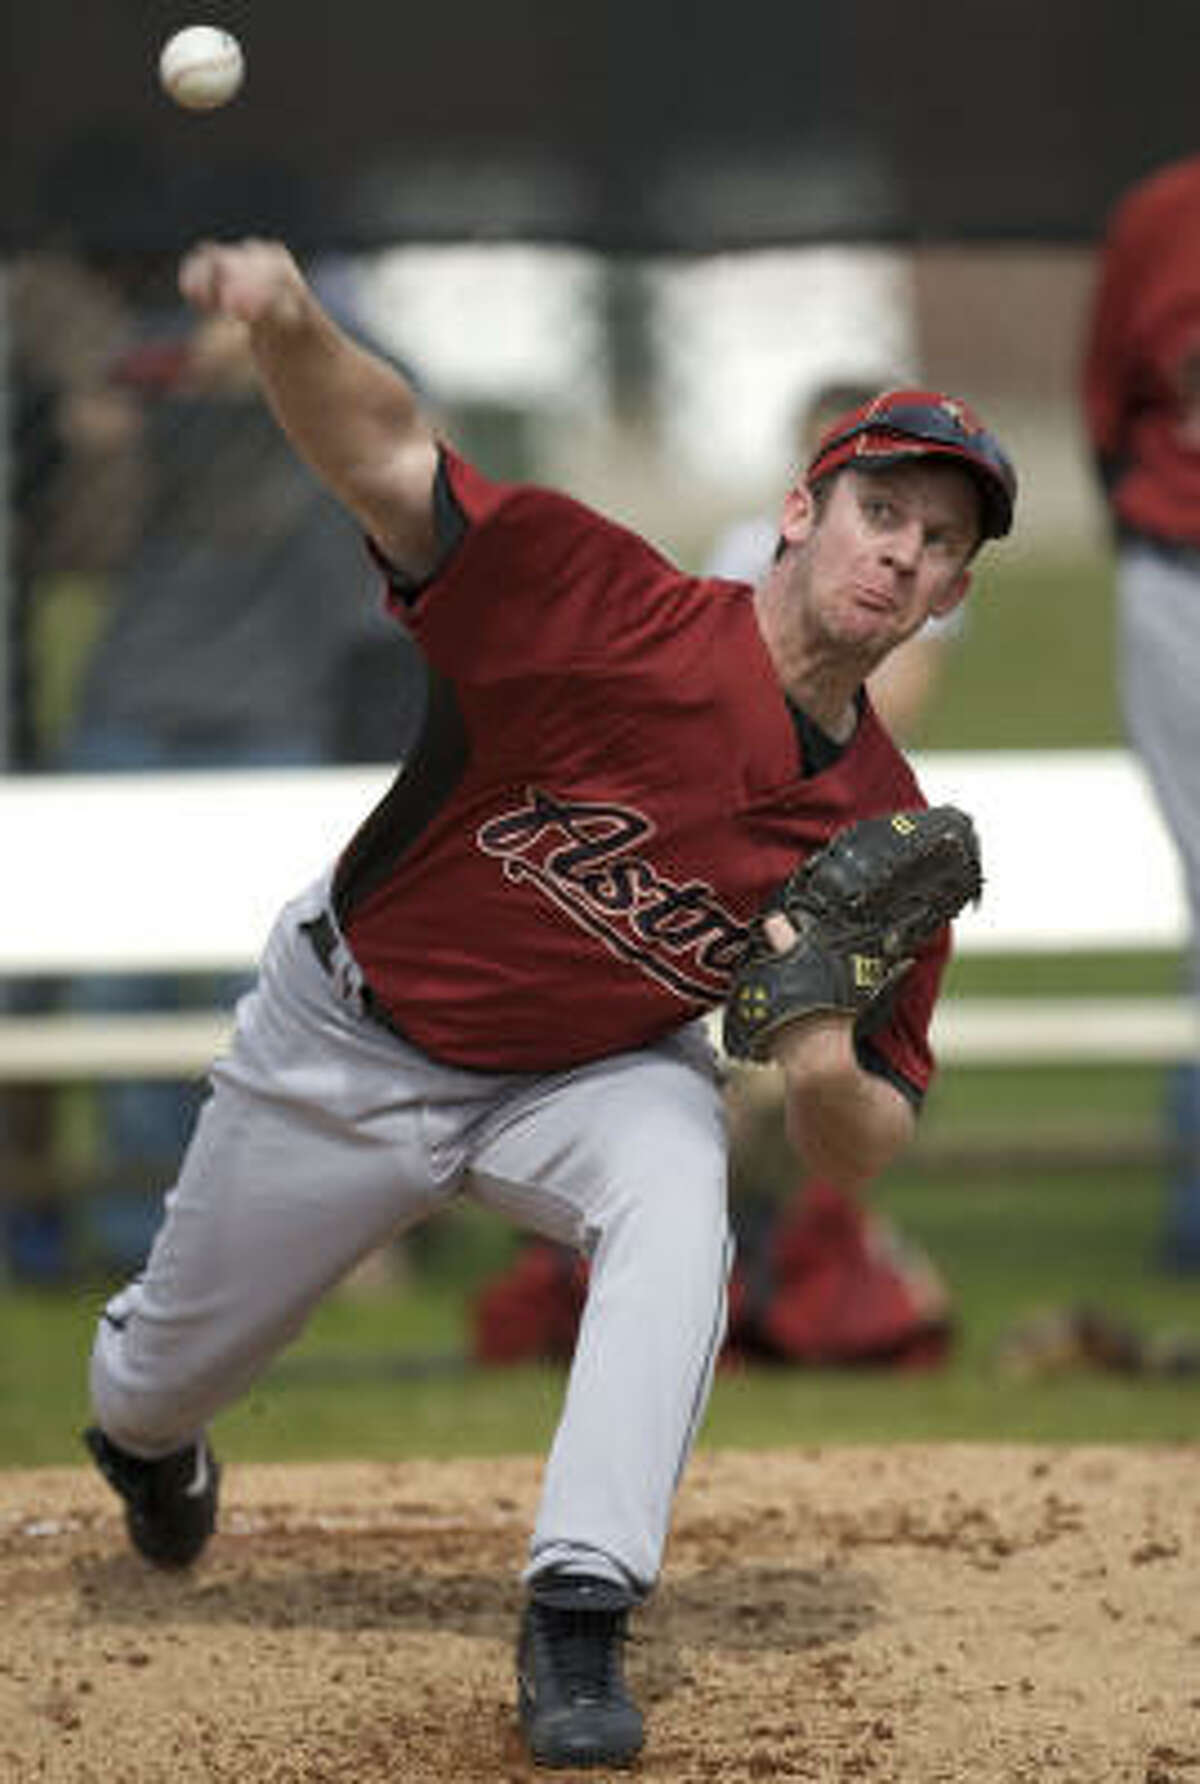 Roy Oswalt will have a regular spring training unlike last year, which was interrupted by the World Baseball Classic.